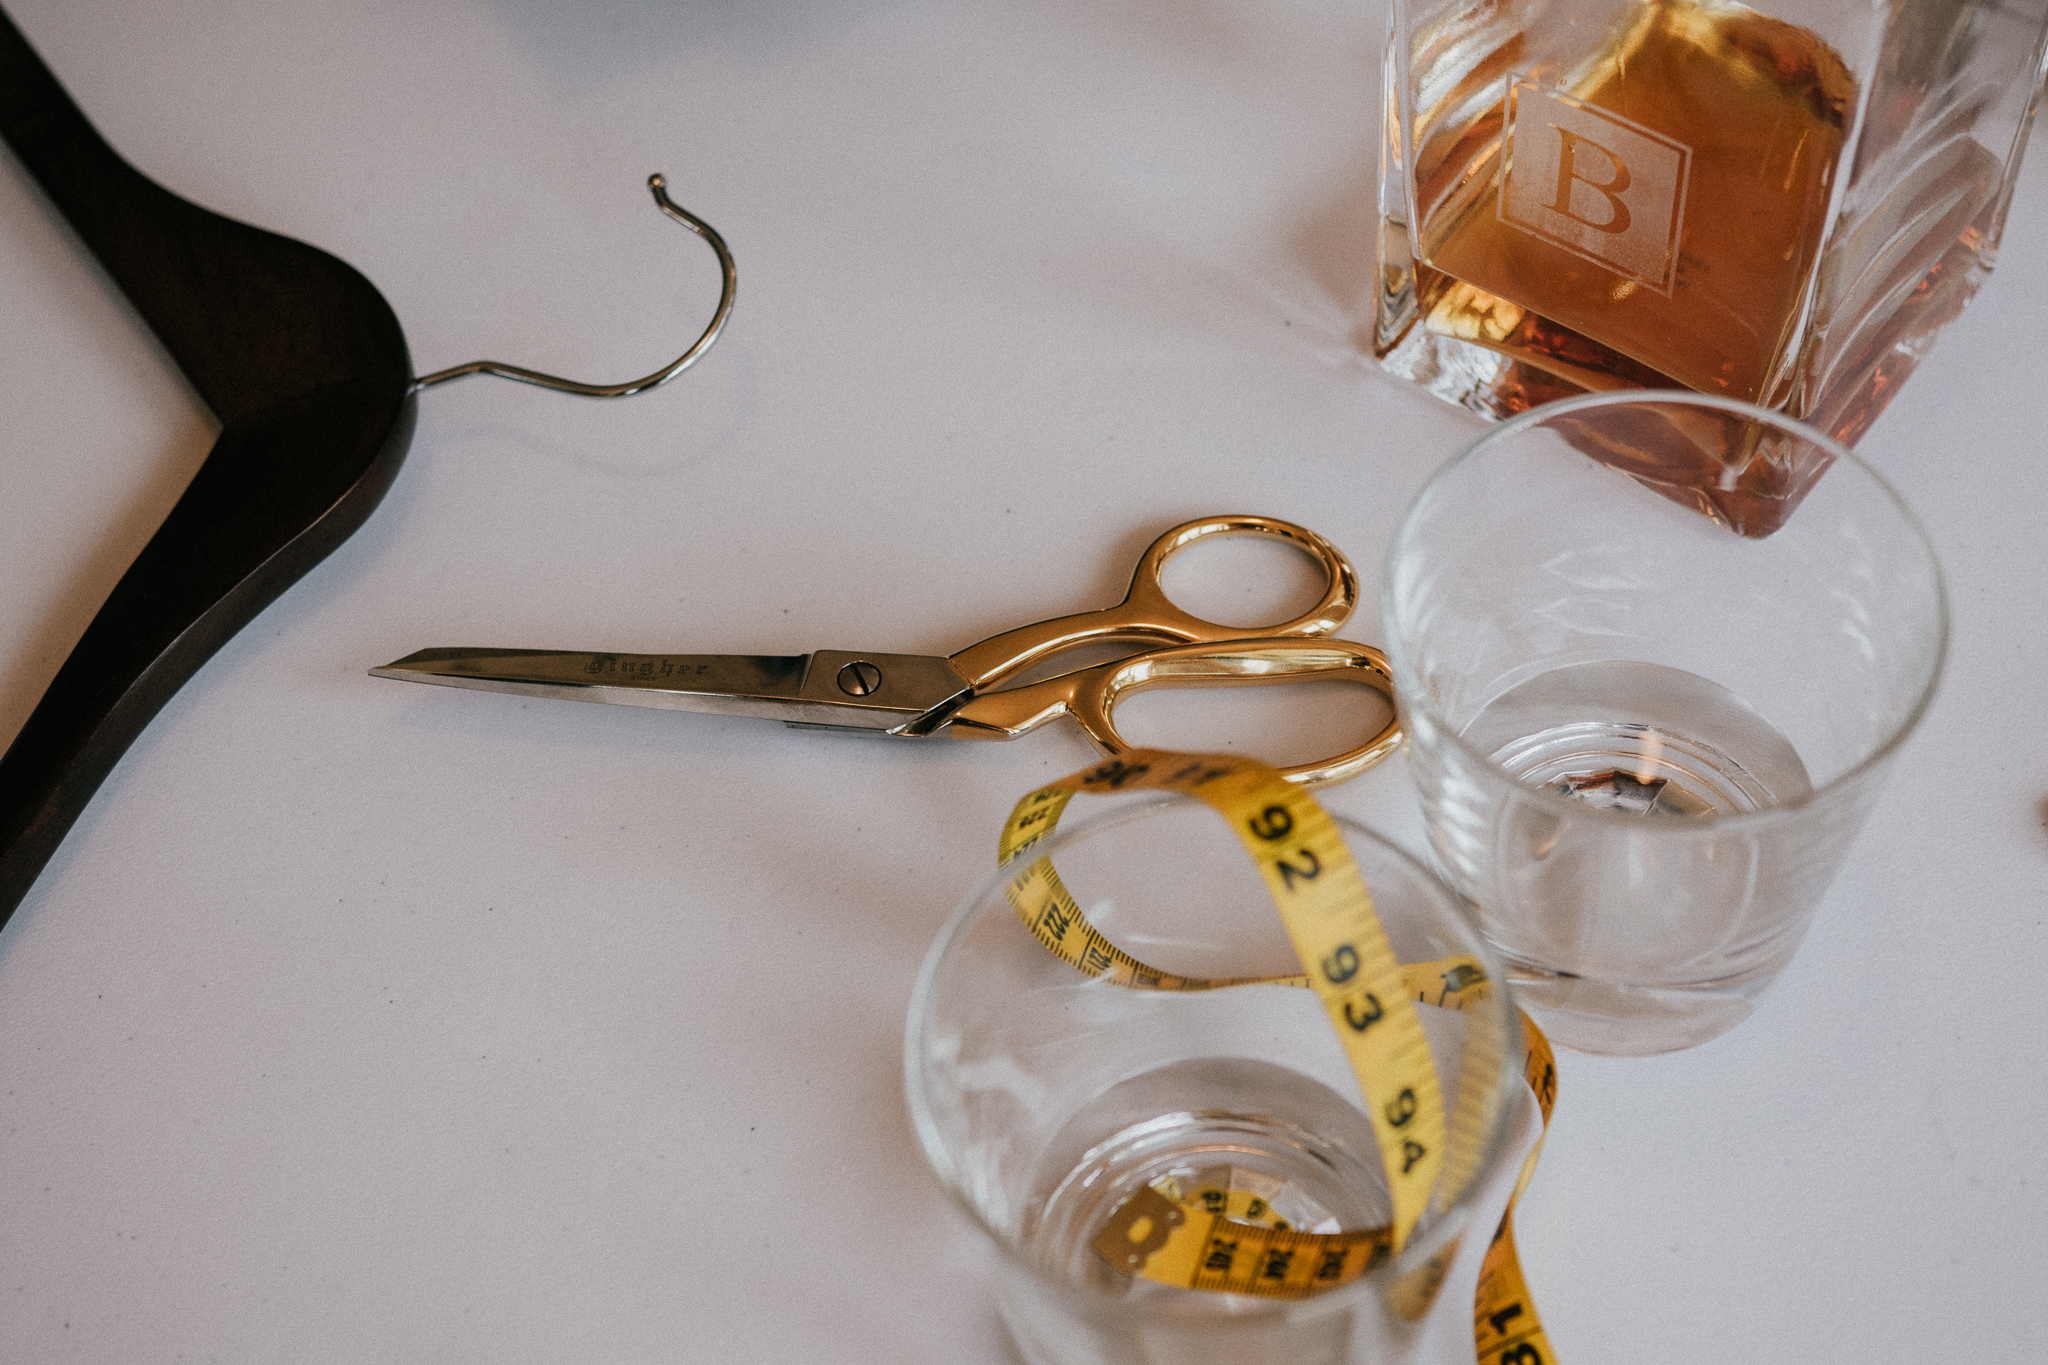 Measuring tape and sewing scissors.